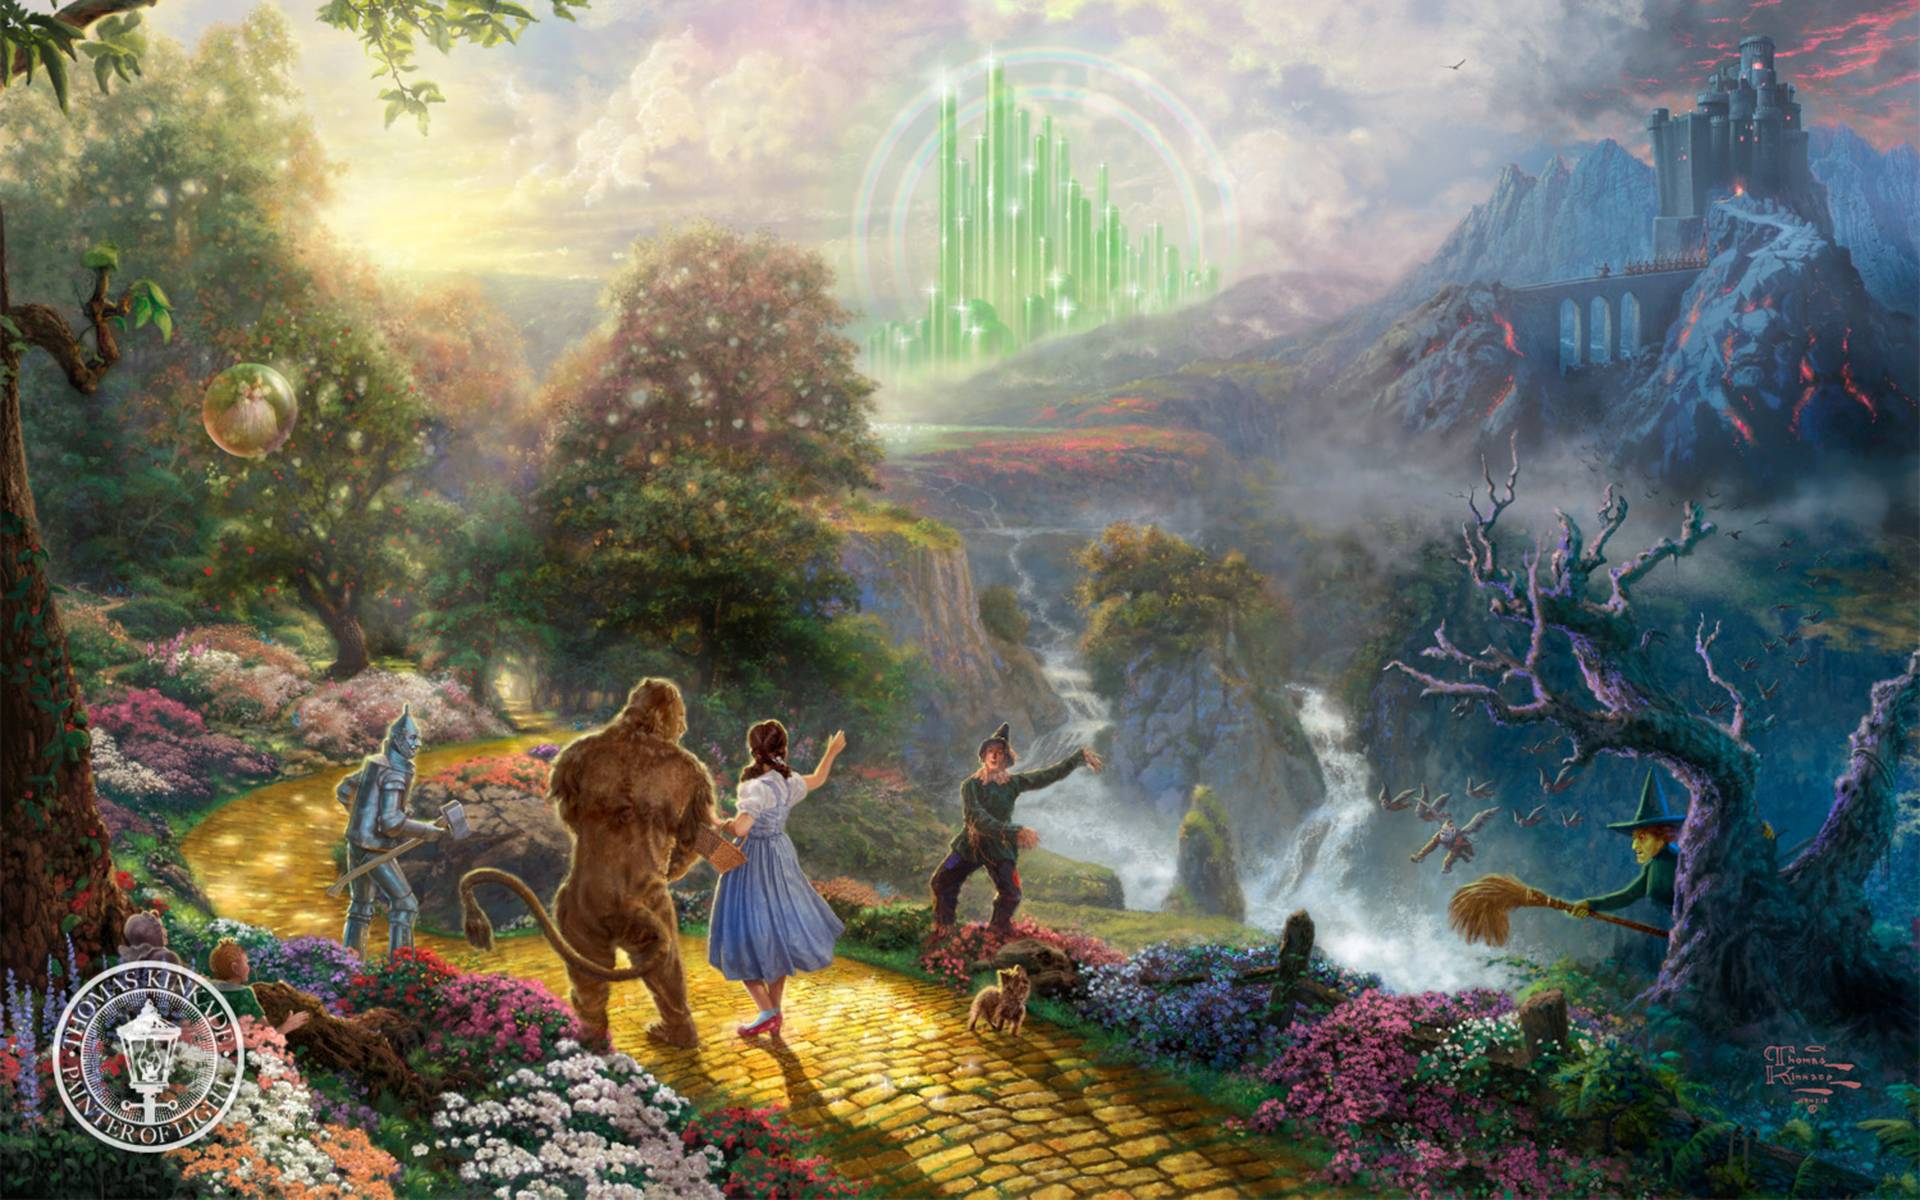 Wizard of oz wallpapers wallpaper cave for Emerald city wall mural